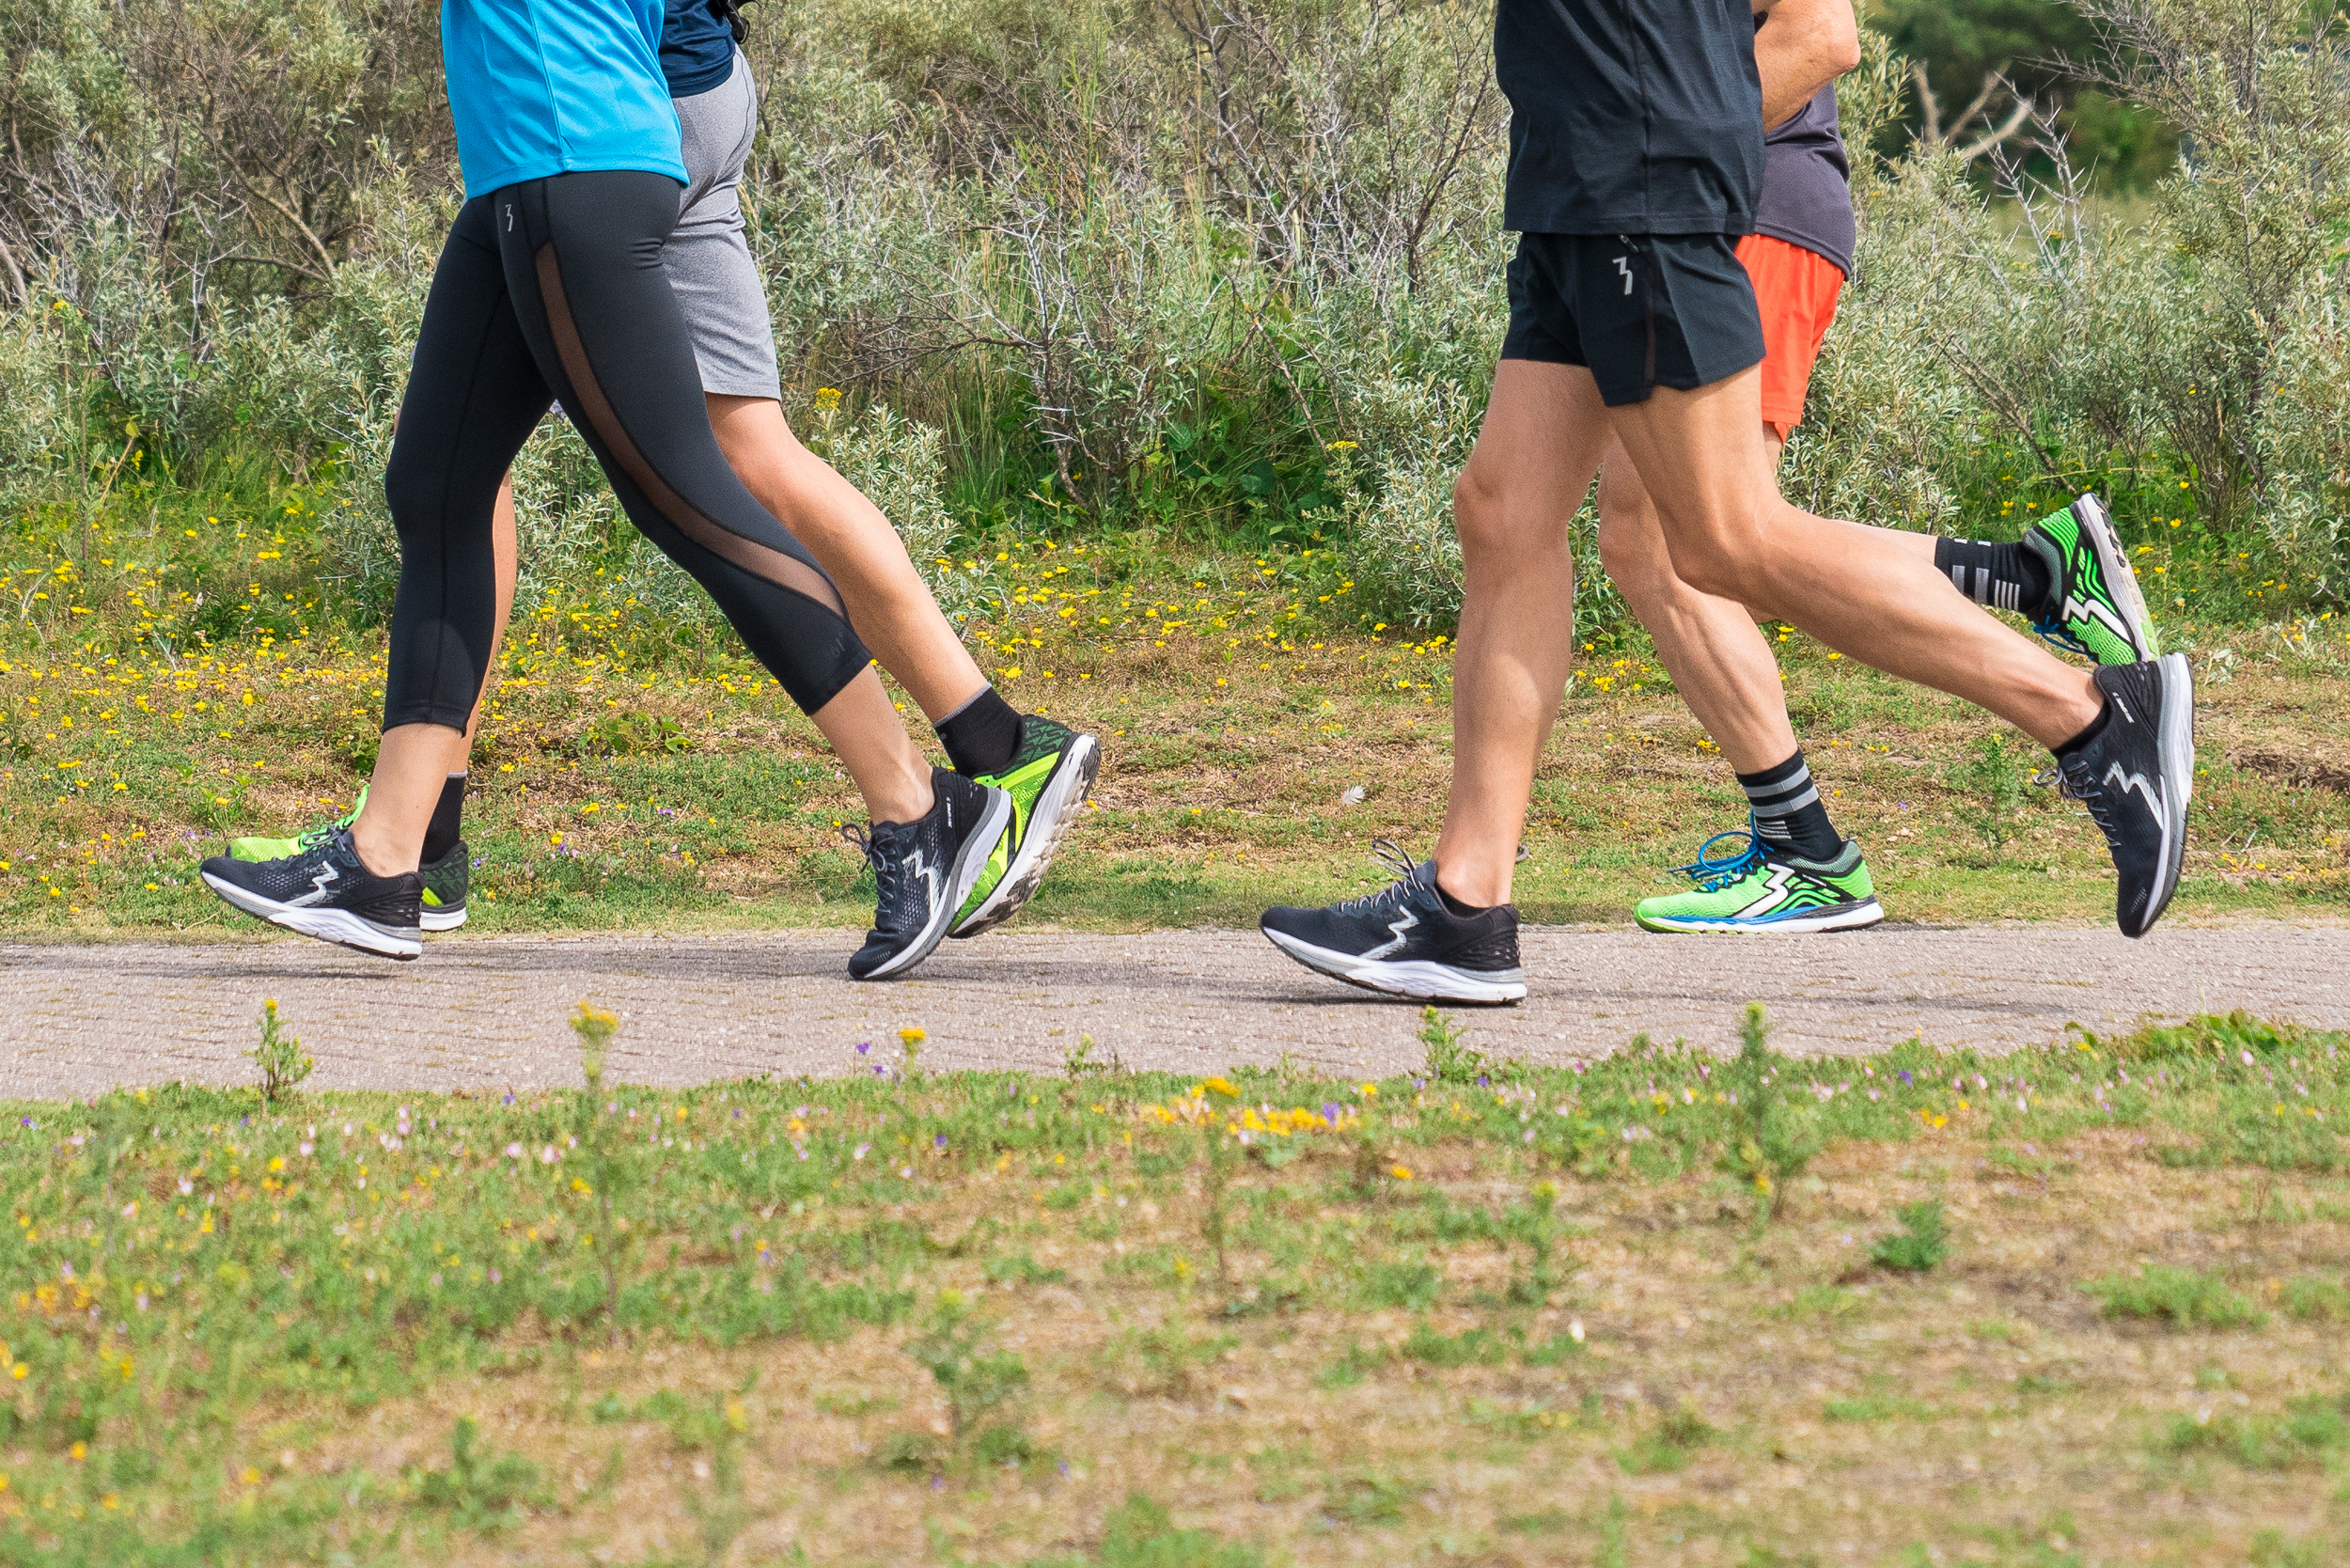 Expert Tips for Lacing Your Trainers - A Pretty Place to Play, London Running and Fitness Blog